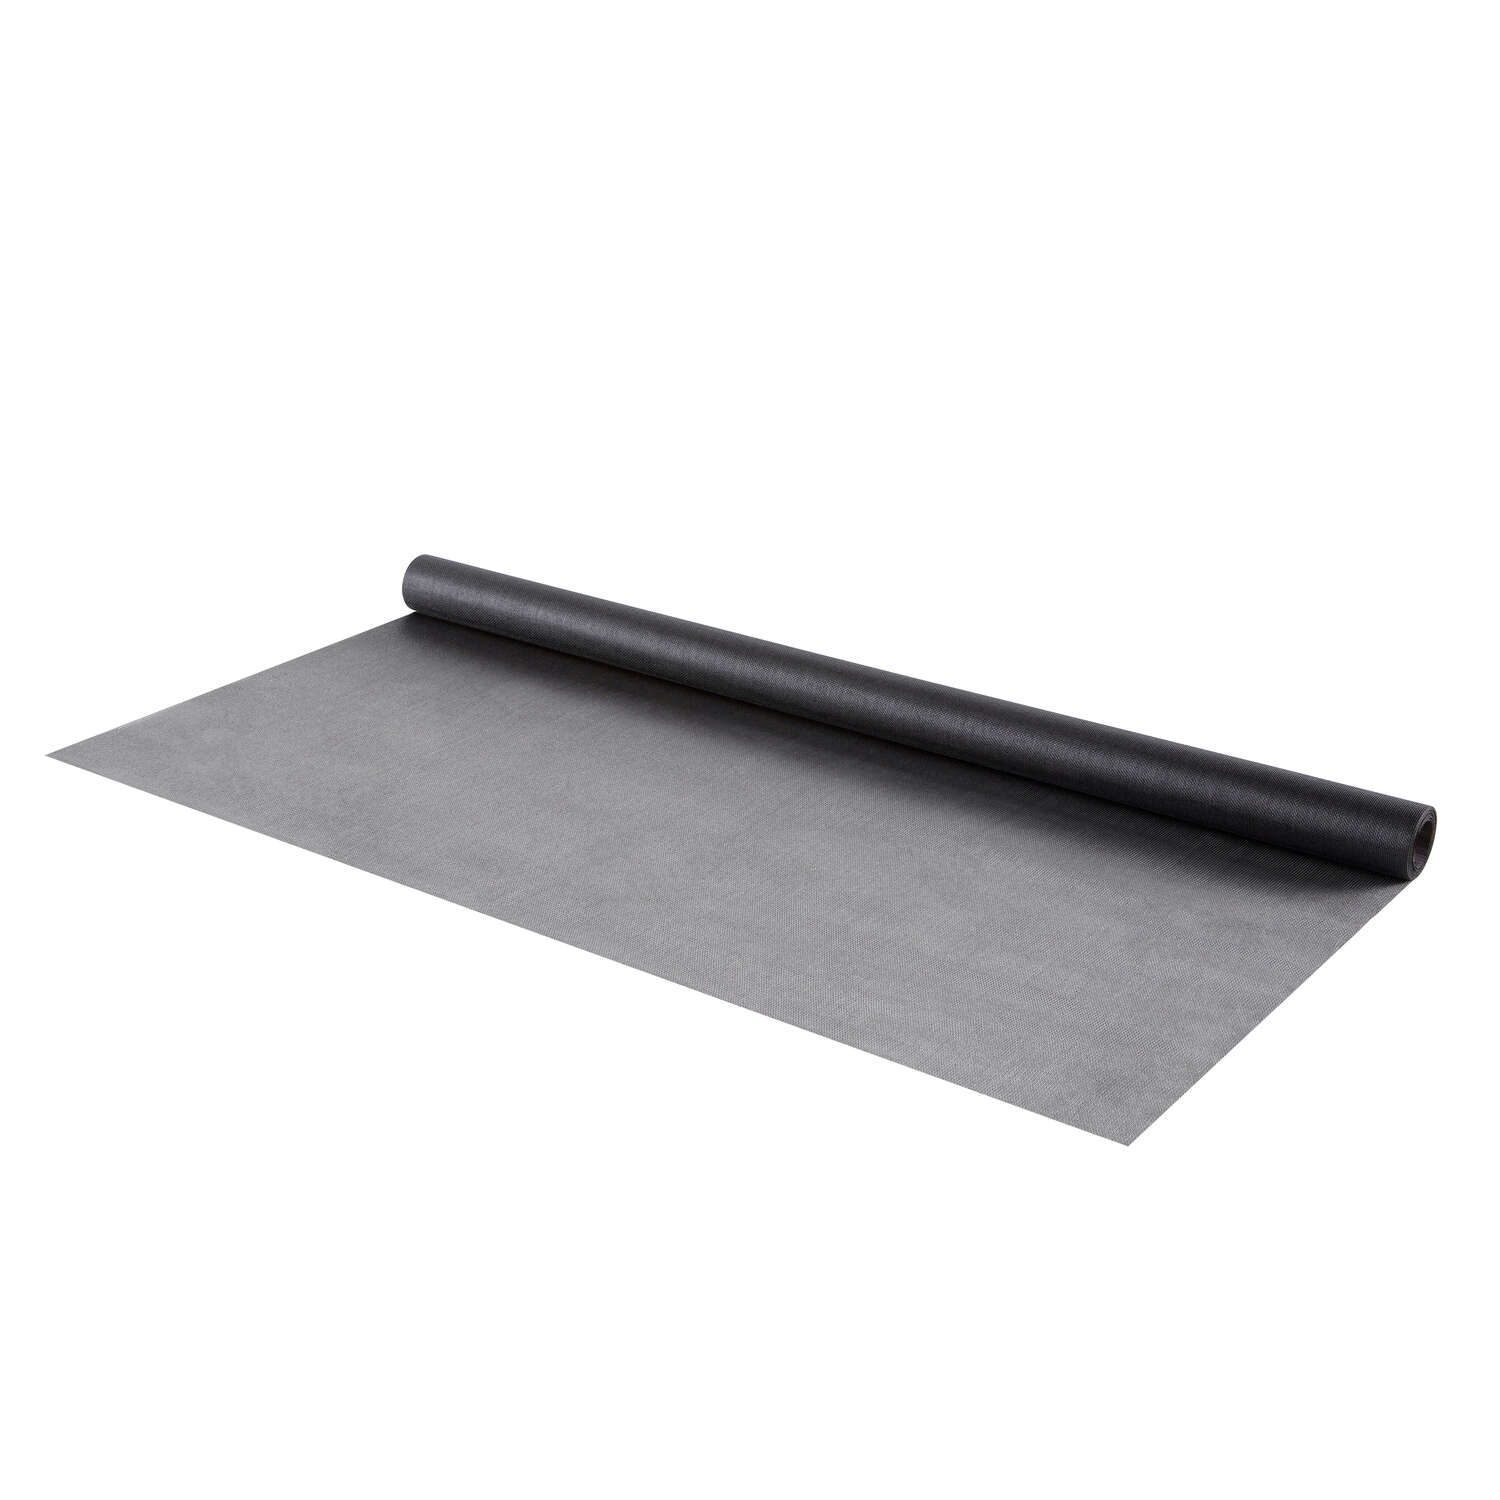 M-D Building Products  Charcoal  Fiberglass  Door and Window Screen  36 in. W x 25 ft. L